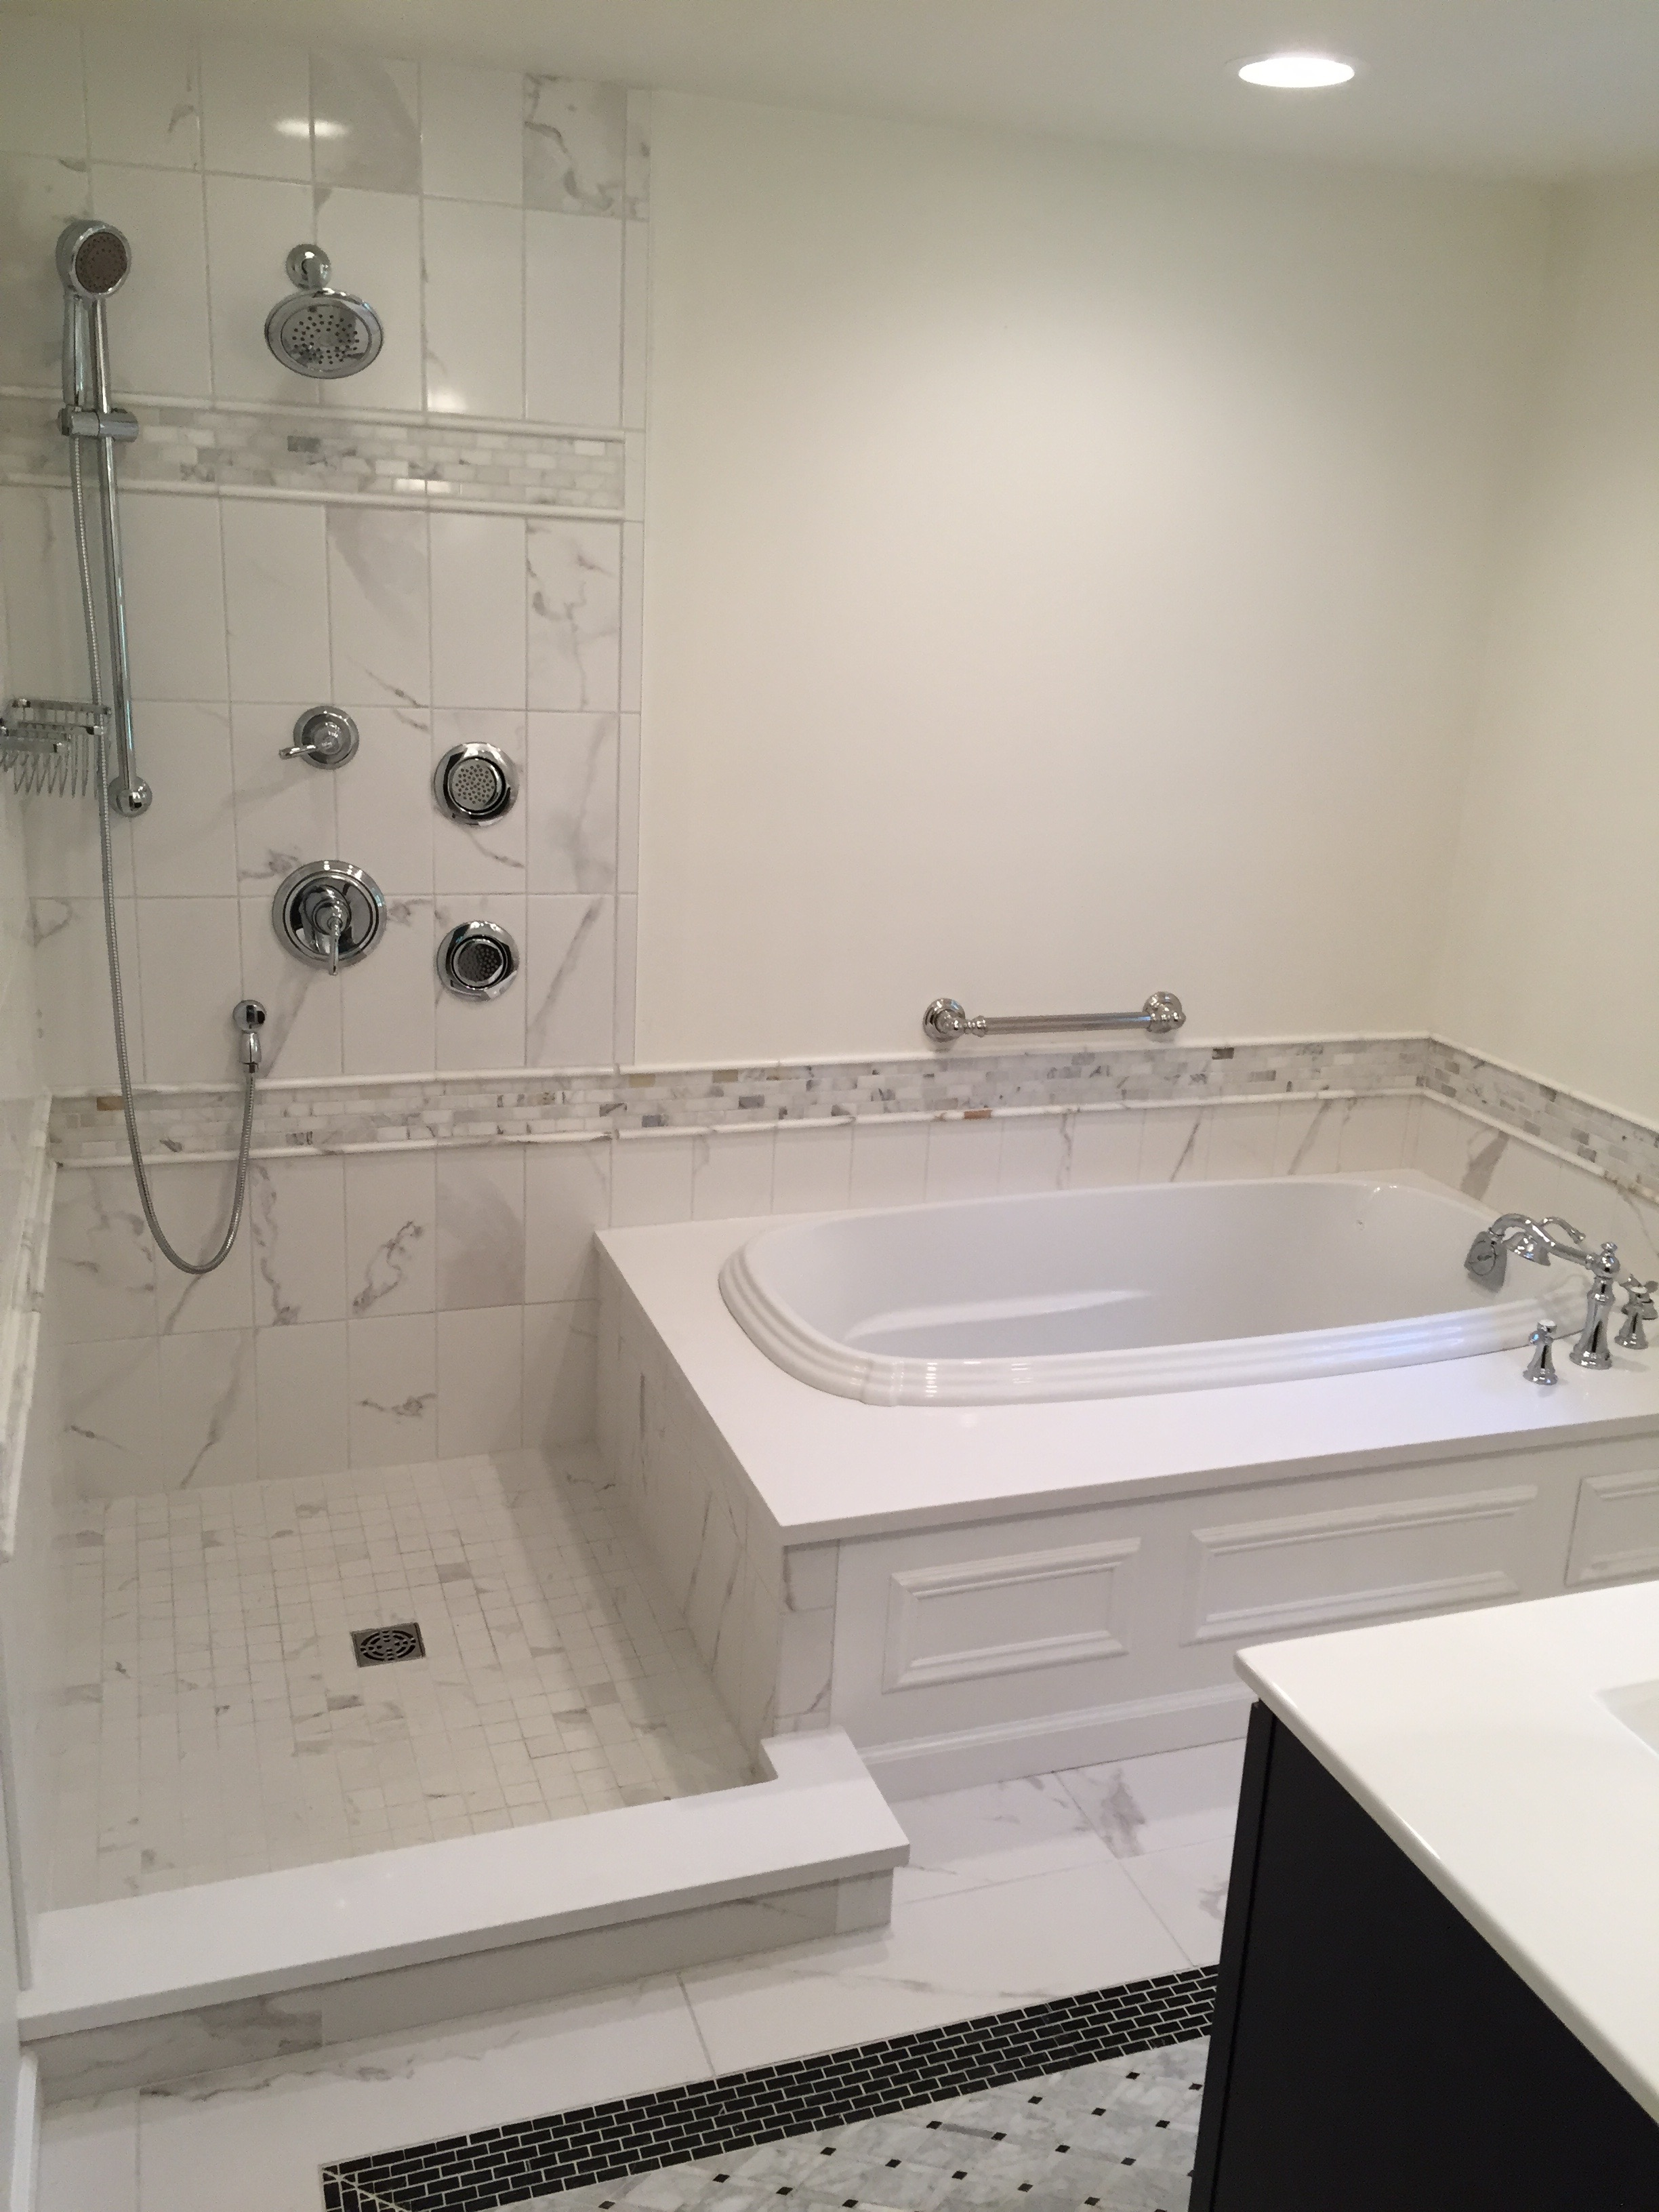 Bathroom Remodel In Williamstown Located In South Jersey AMaster - Bathroom remodeling south jersey